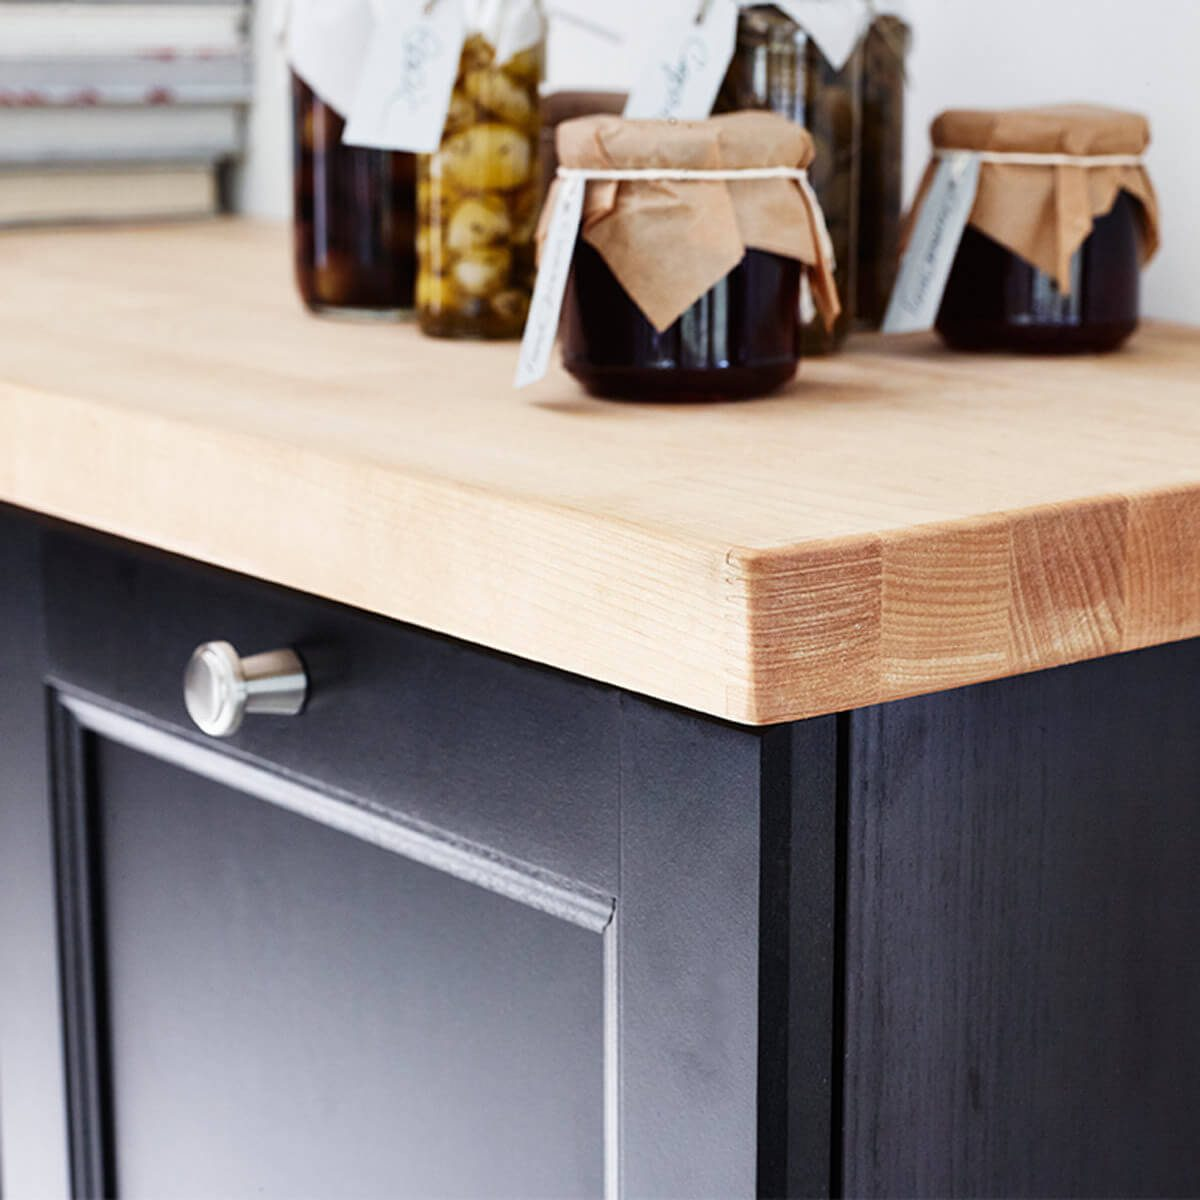 Kitchen Upgrades: Wood Countertops